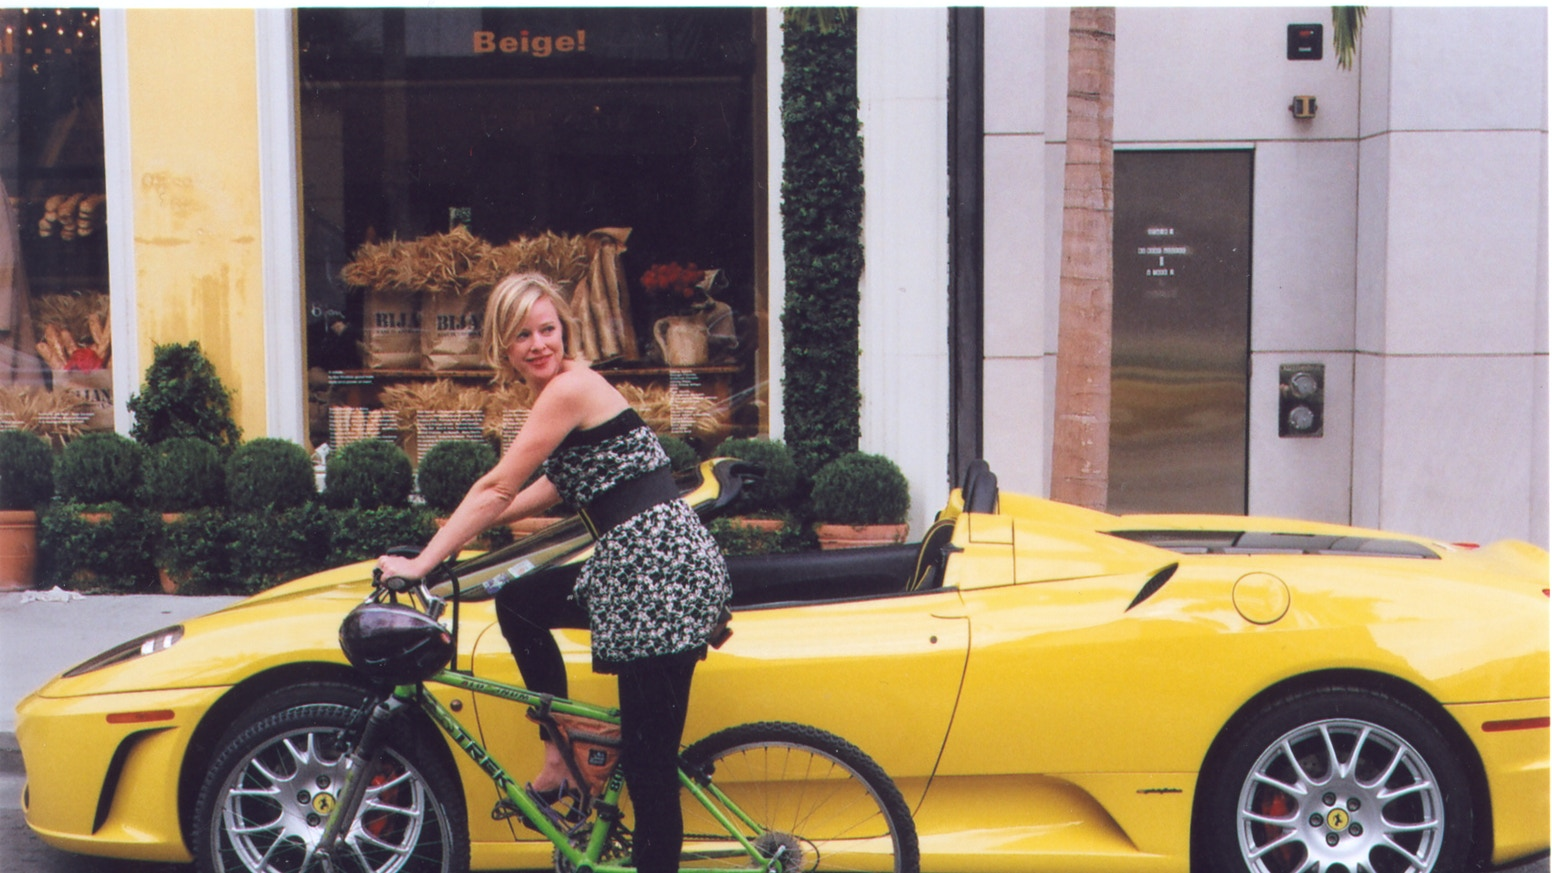 CarLess in L.A. is a documentary about a woman who goes without a car in Los Angeles for 80 days...and survives to tell the tale.